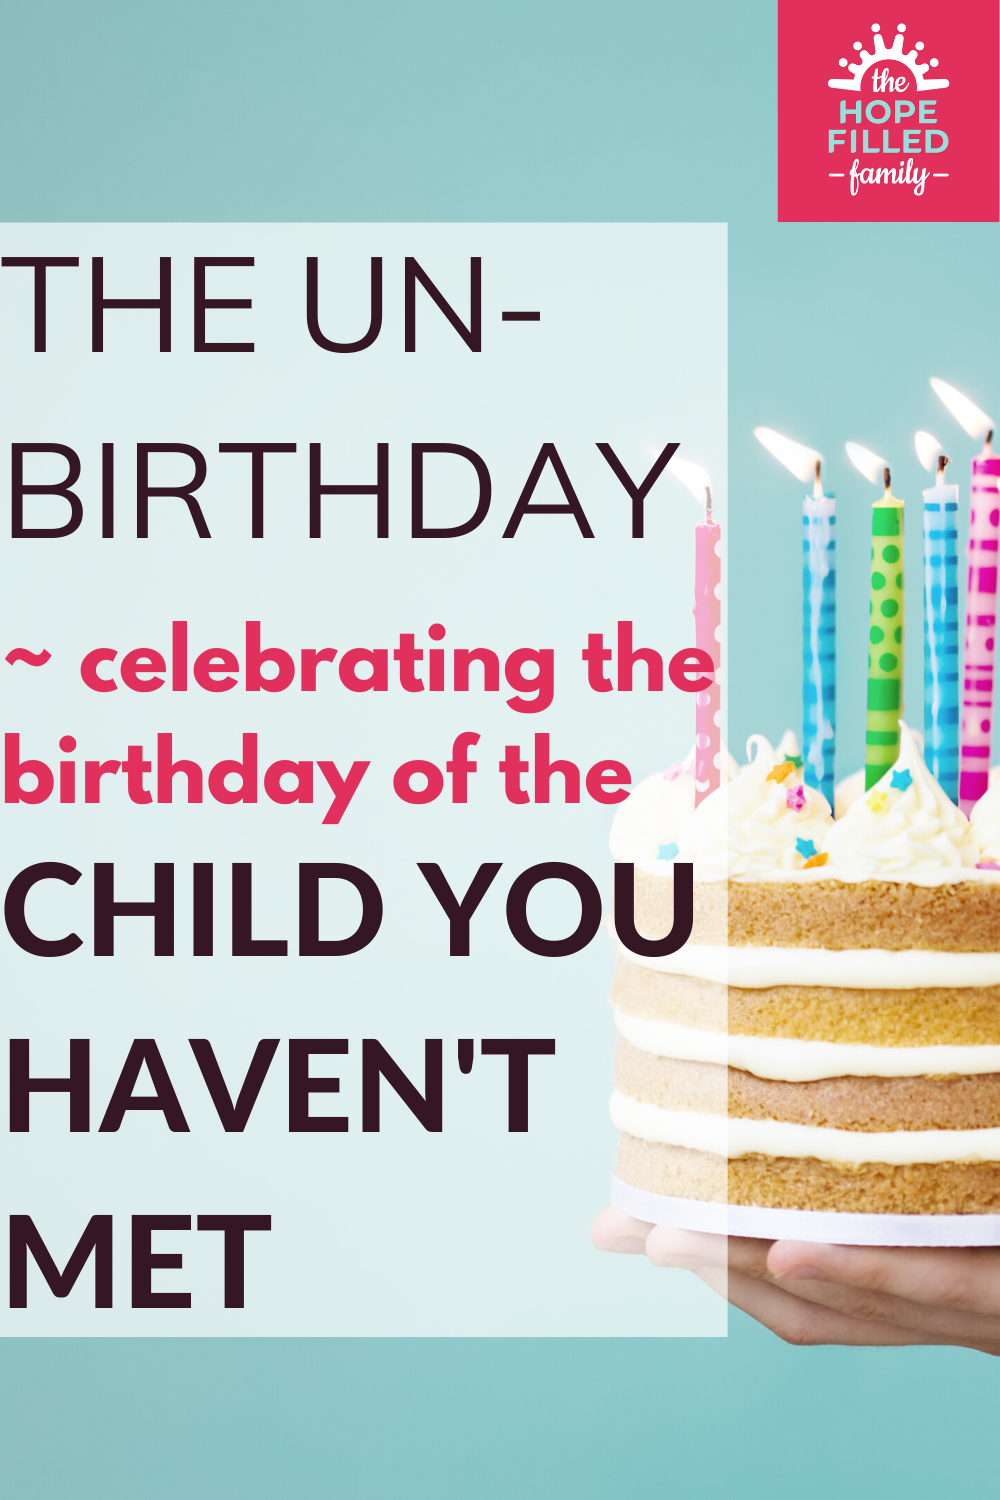 The strangeness of knowing that your child experienced birthdays before you met them.